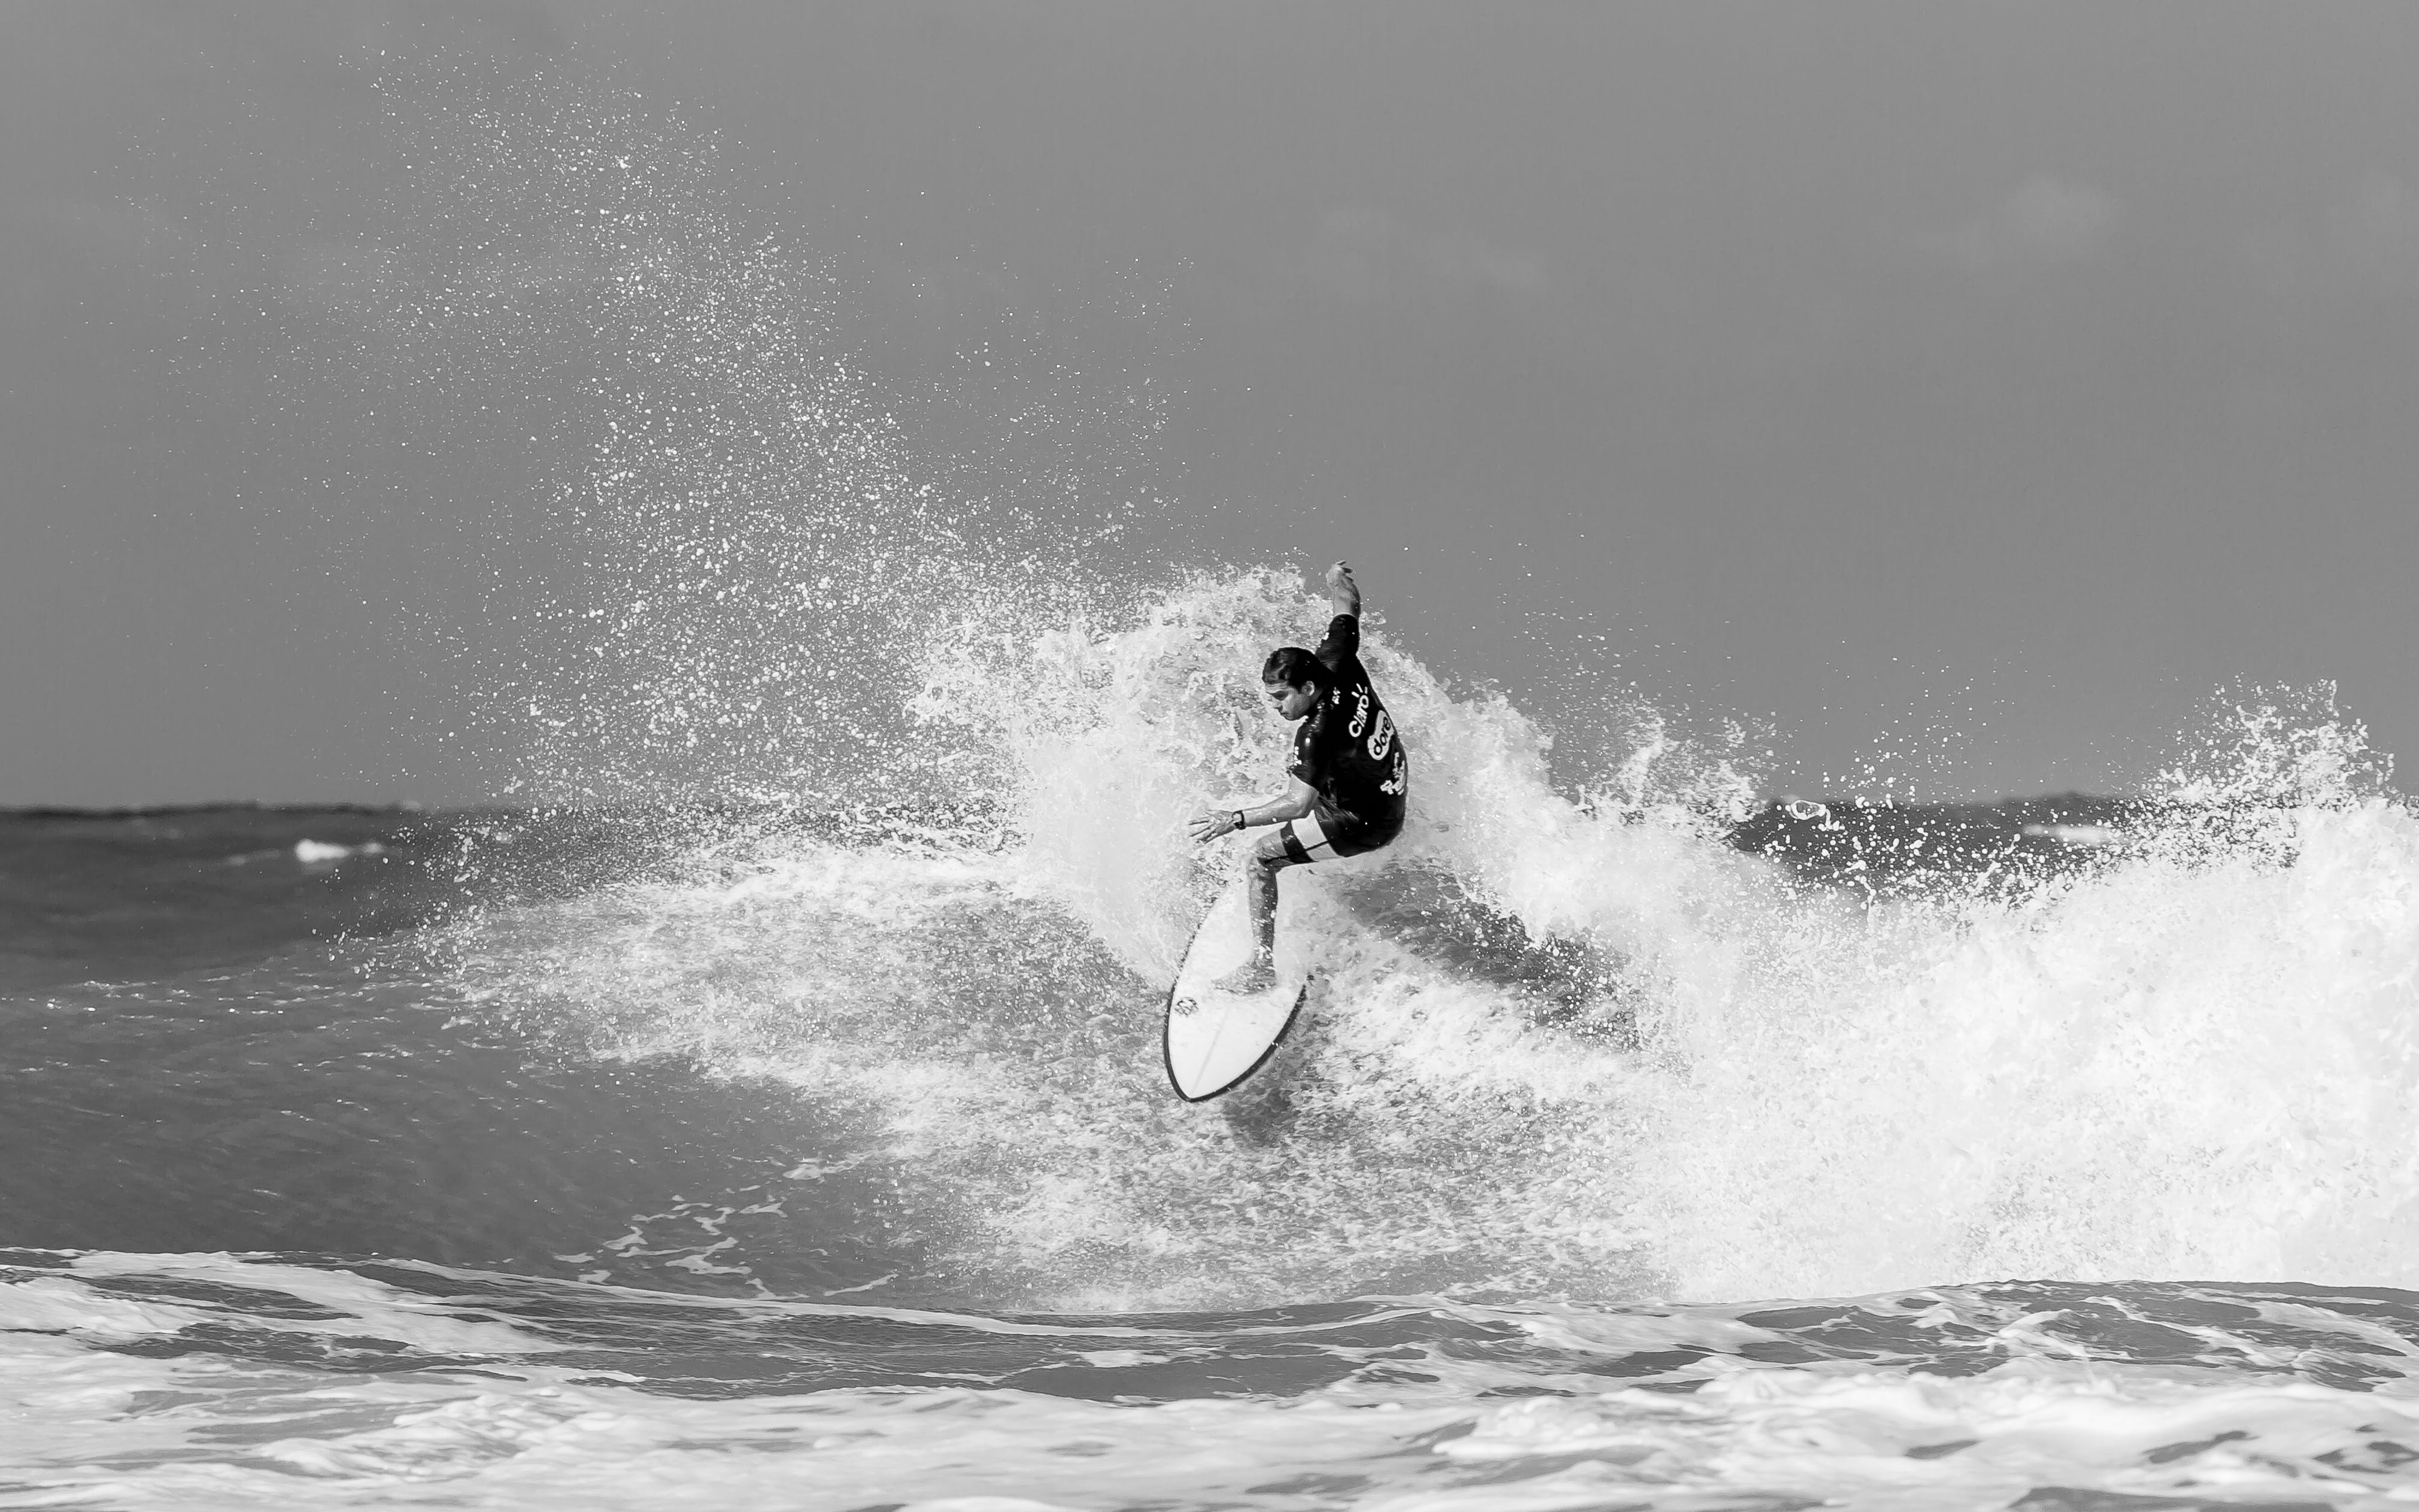 Grayscale Photography of Surfer